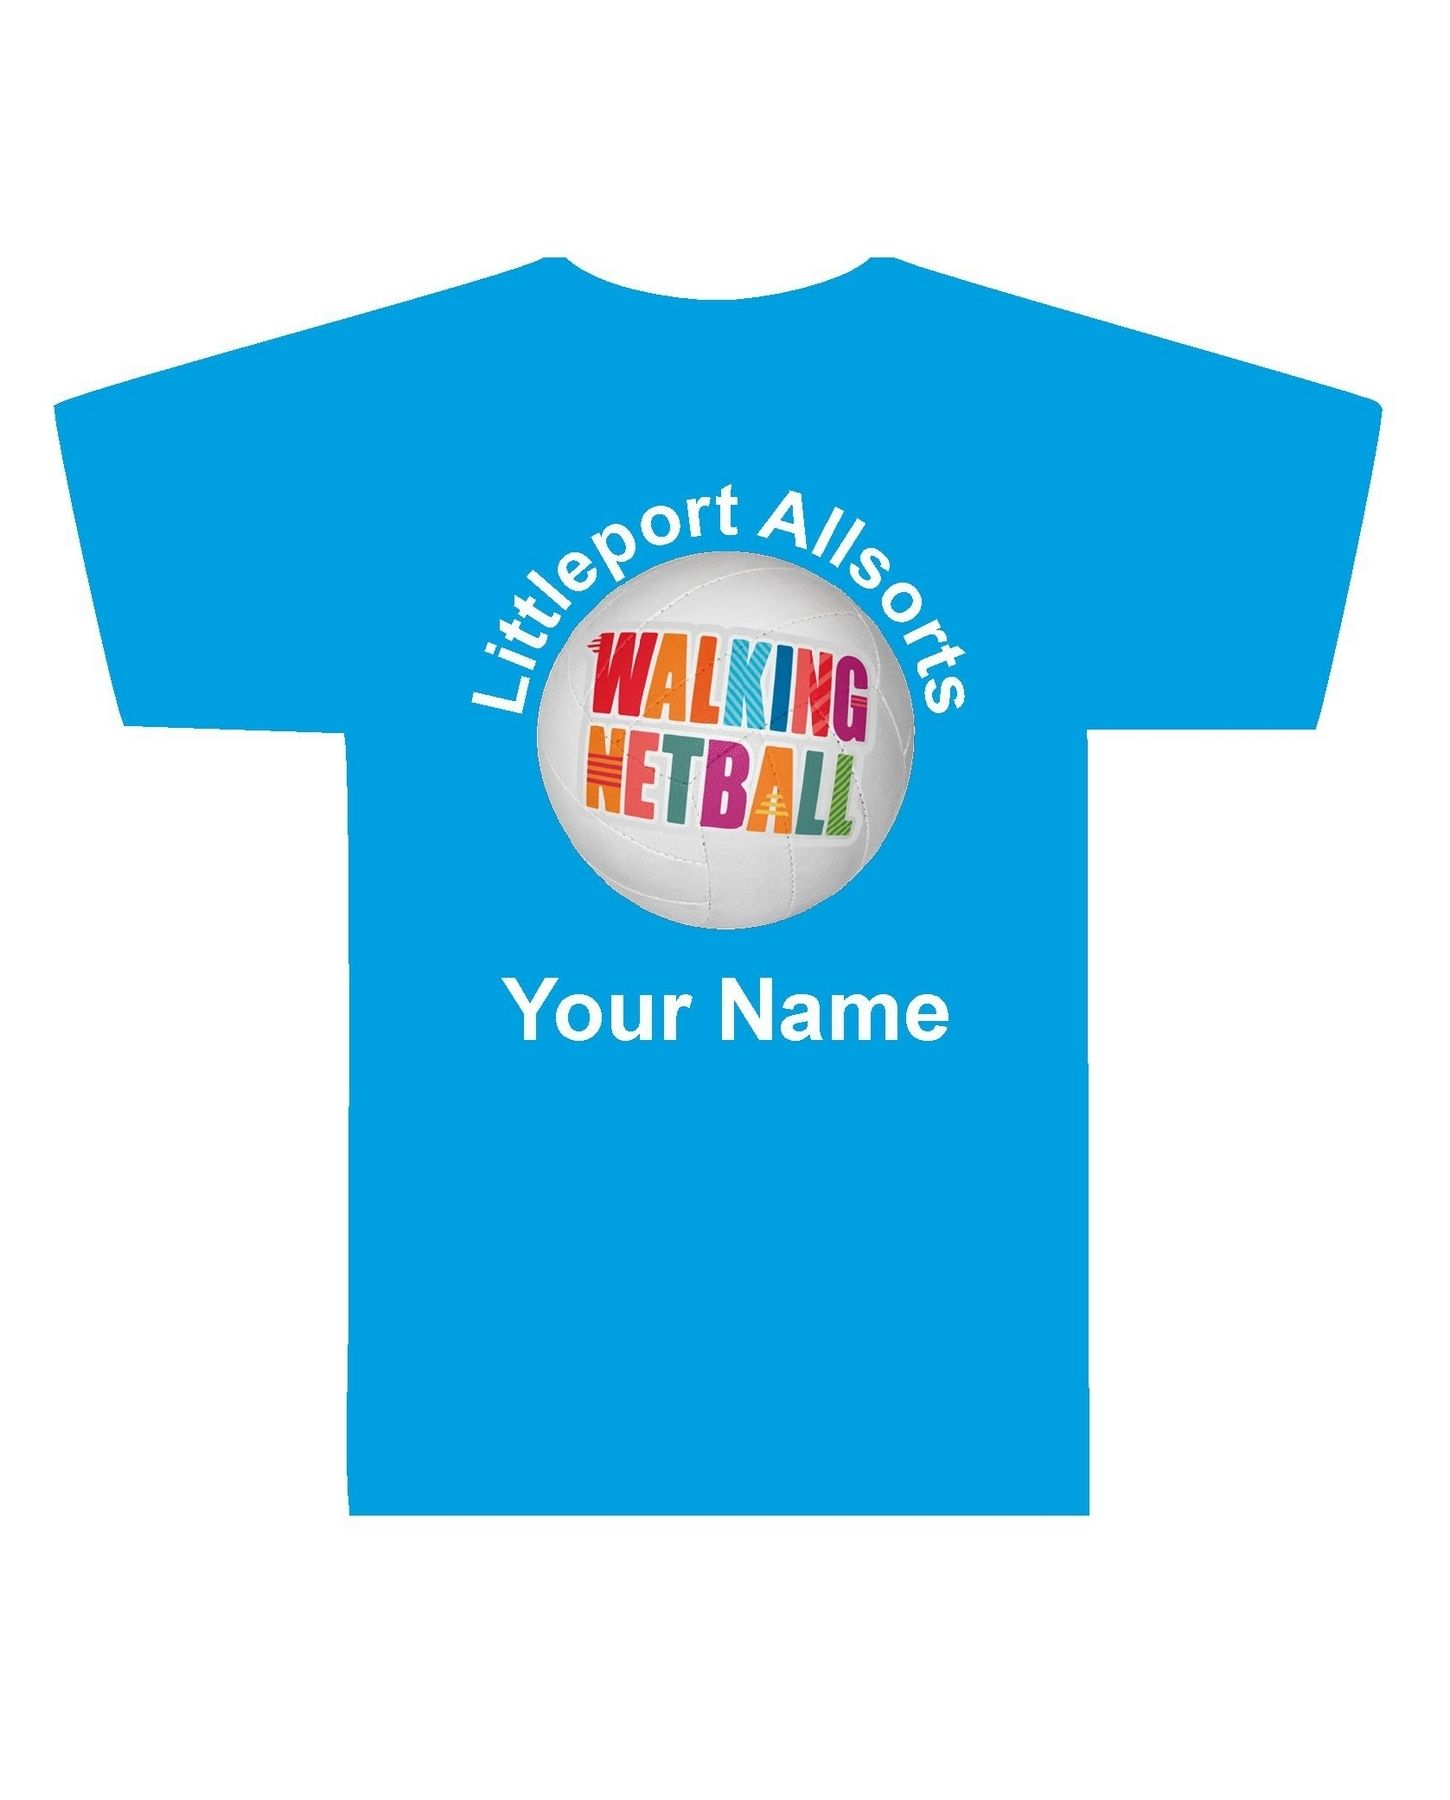 Littleport Walking Netball – Cool Tee (Unisex)